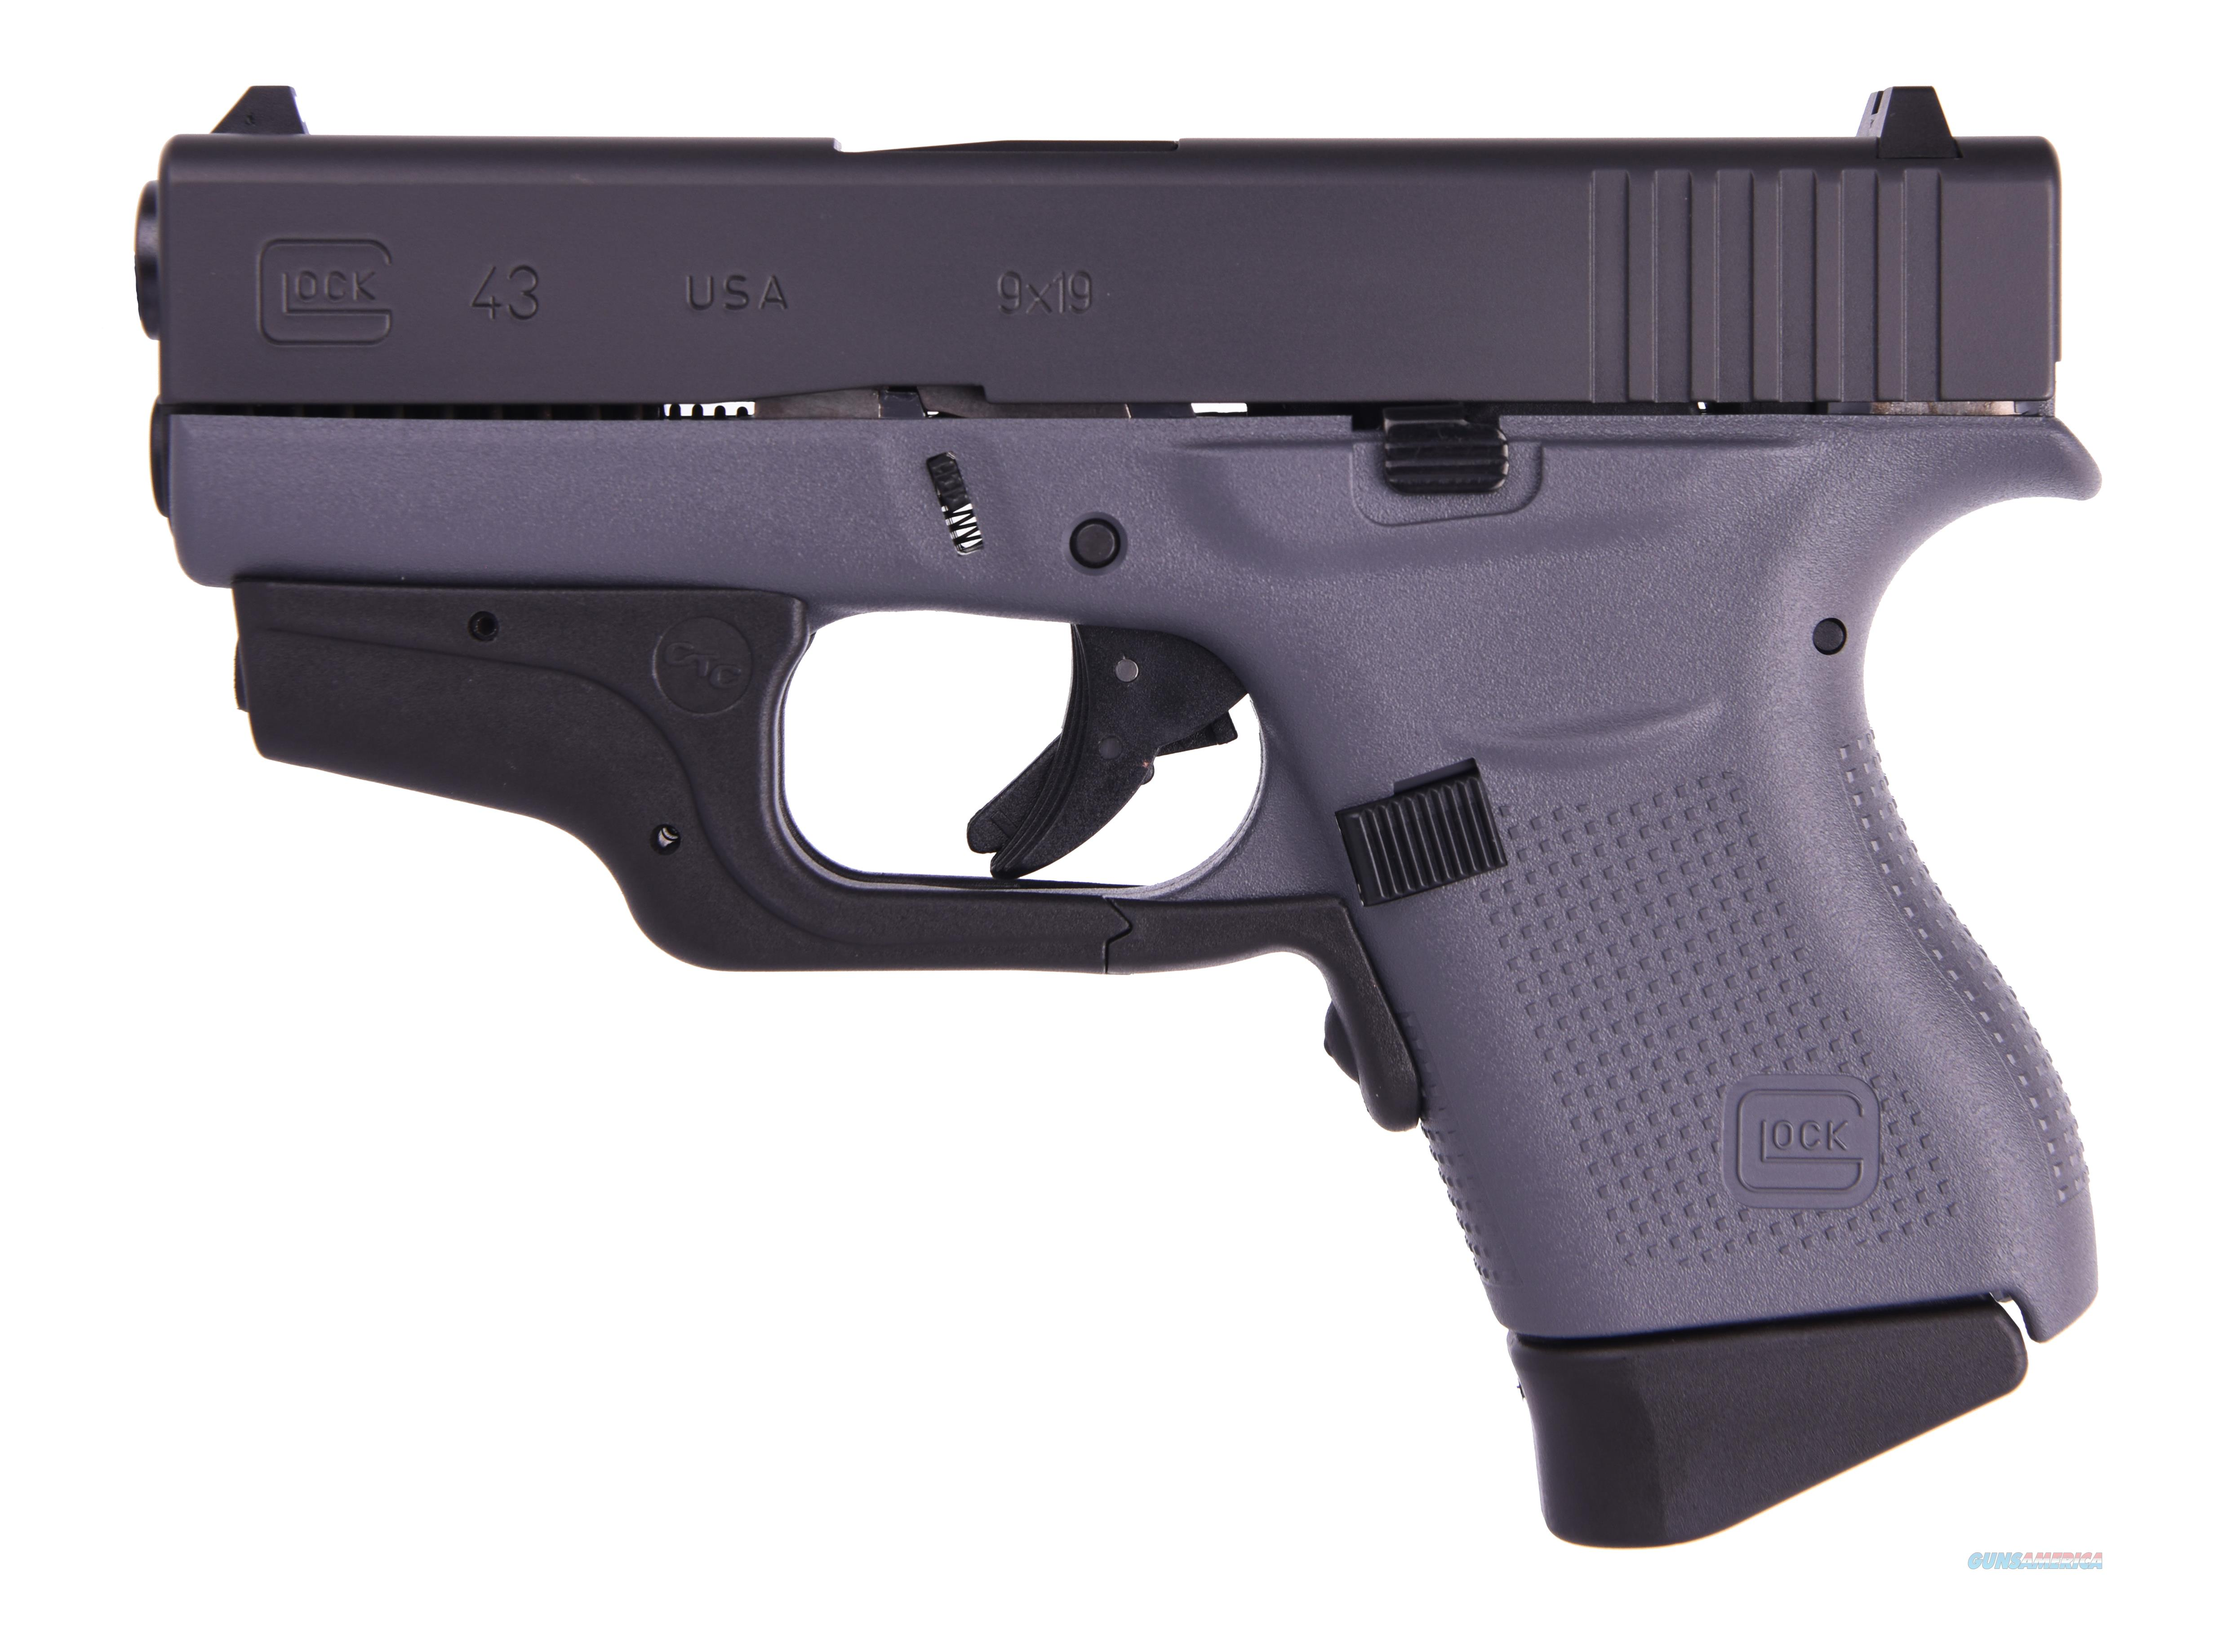 GLOCK G43 G3 GRAY 9MM 6+1 3.39 LASER TWO 6RD MAGAZINES  Guns > Pistols > G Misc Pistols